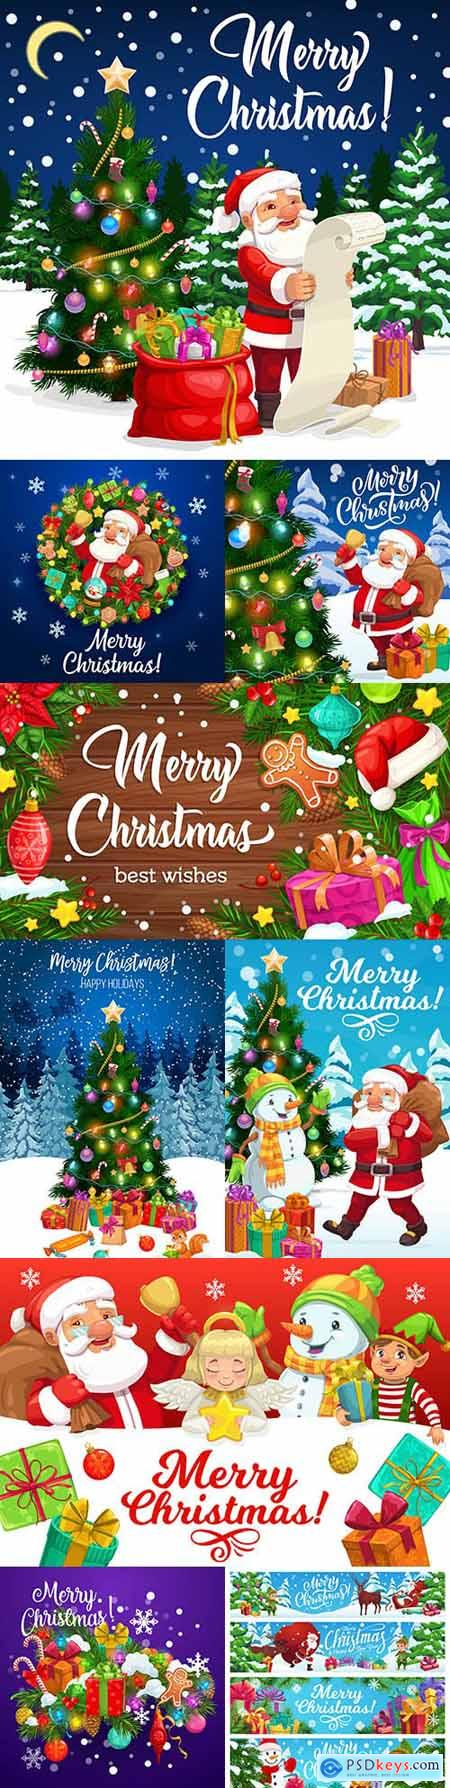 Christmas greeting card with Santa Claus gifts